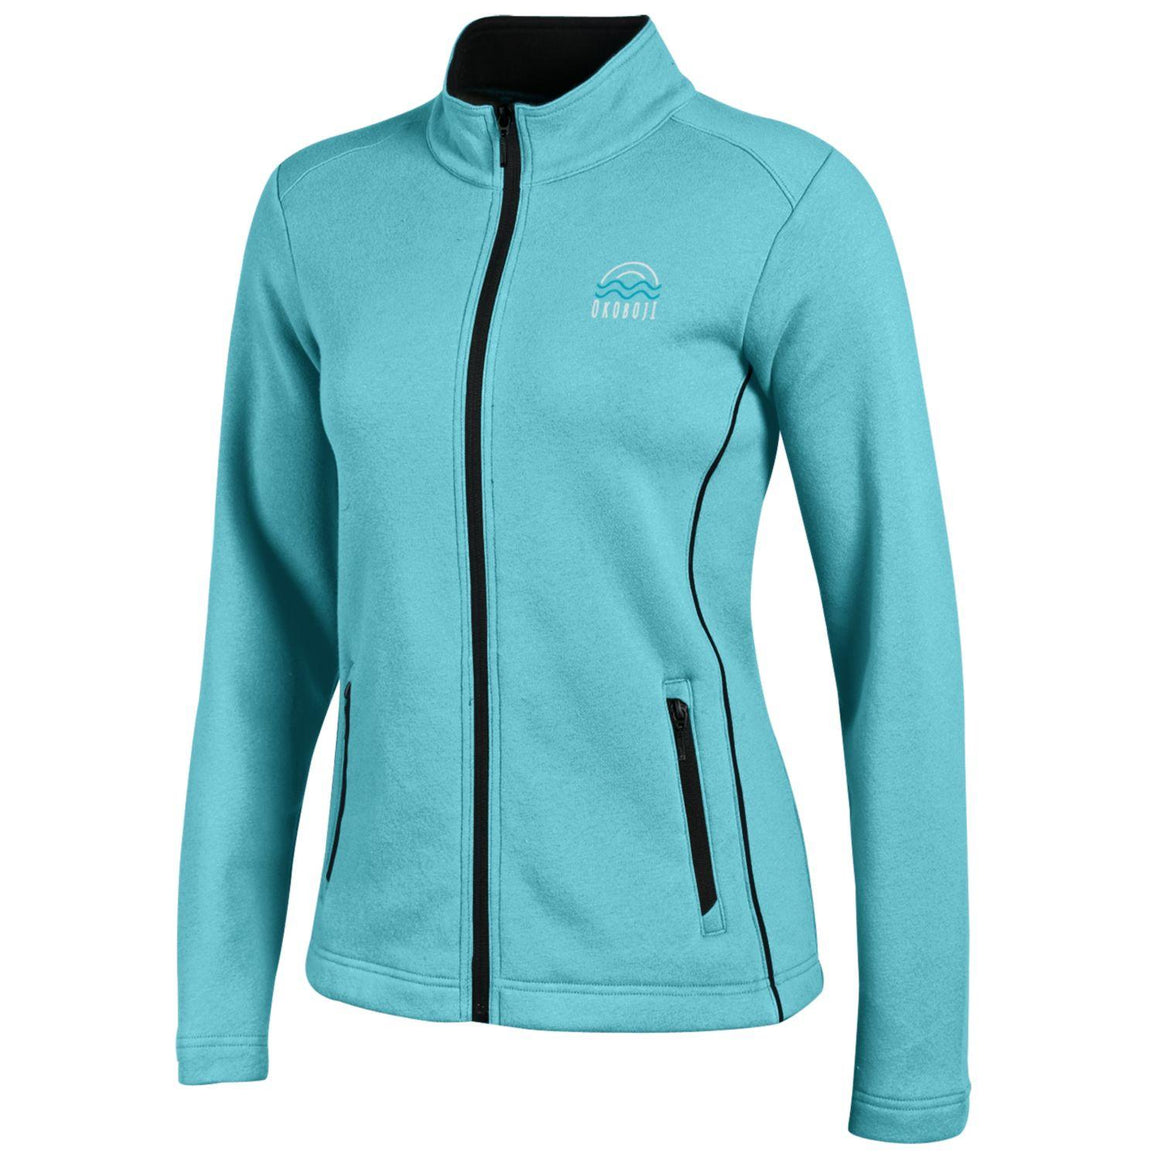 Ladies Deluxe Touch Full Zip-Turquoise Tint